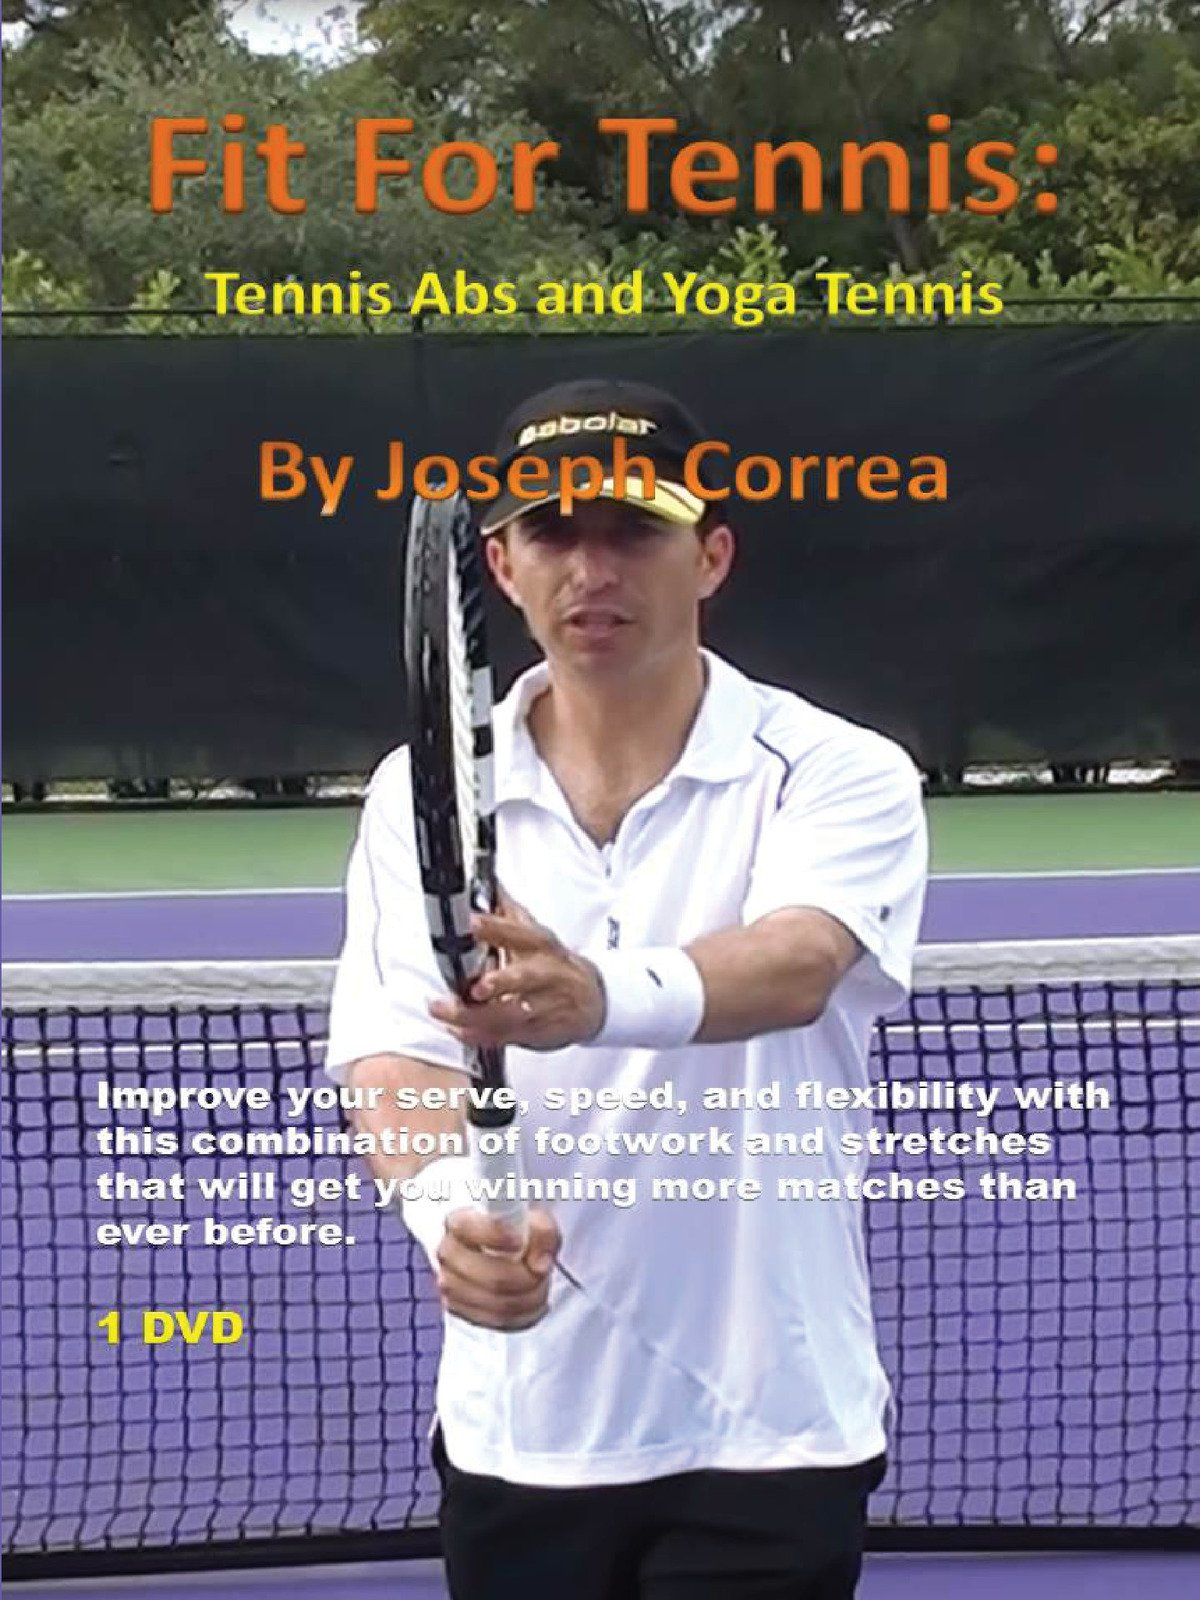 Amazon.com: Fit For Tennis: Tennis Abs and Yoga Tennis ...